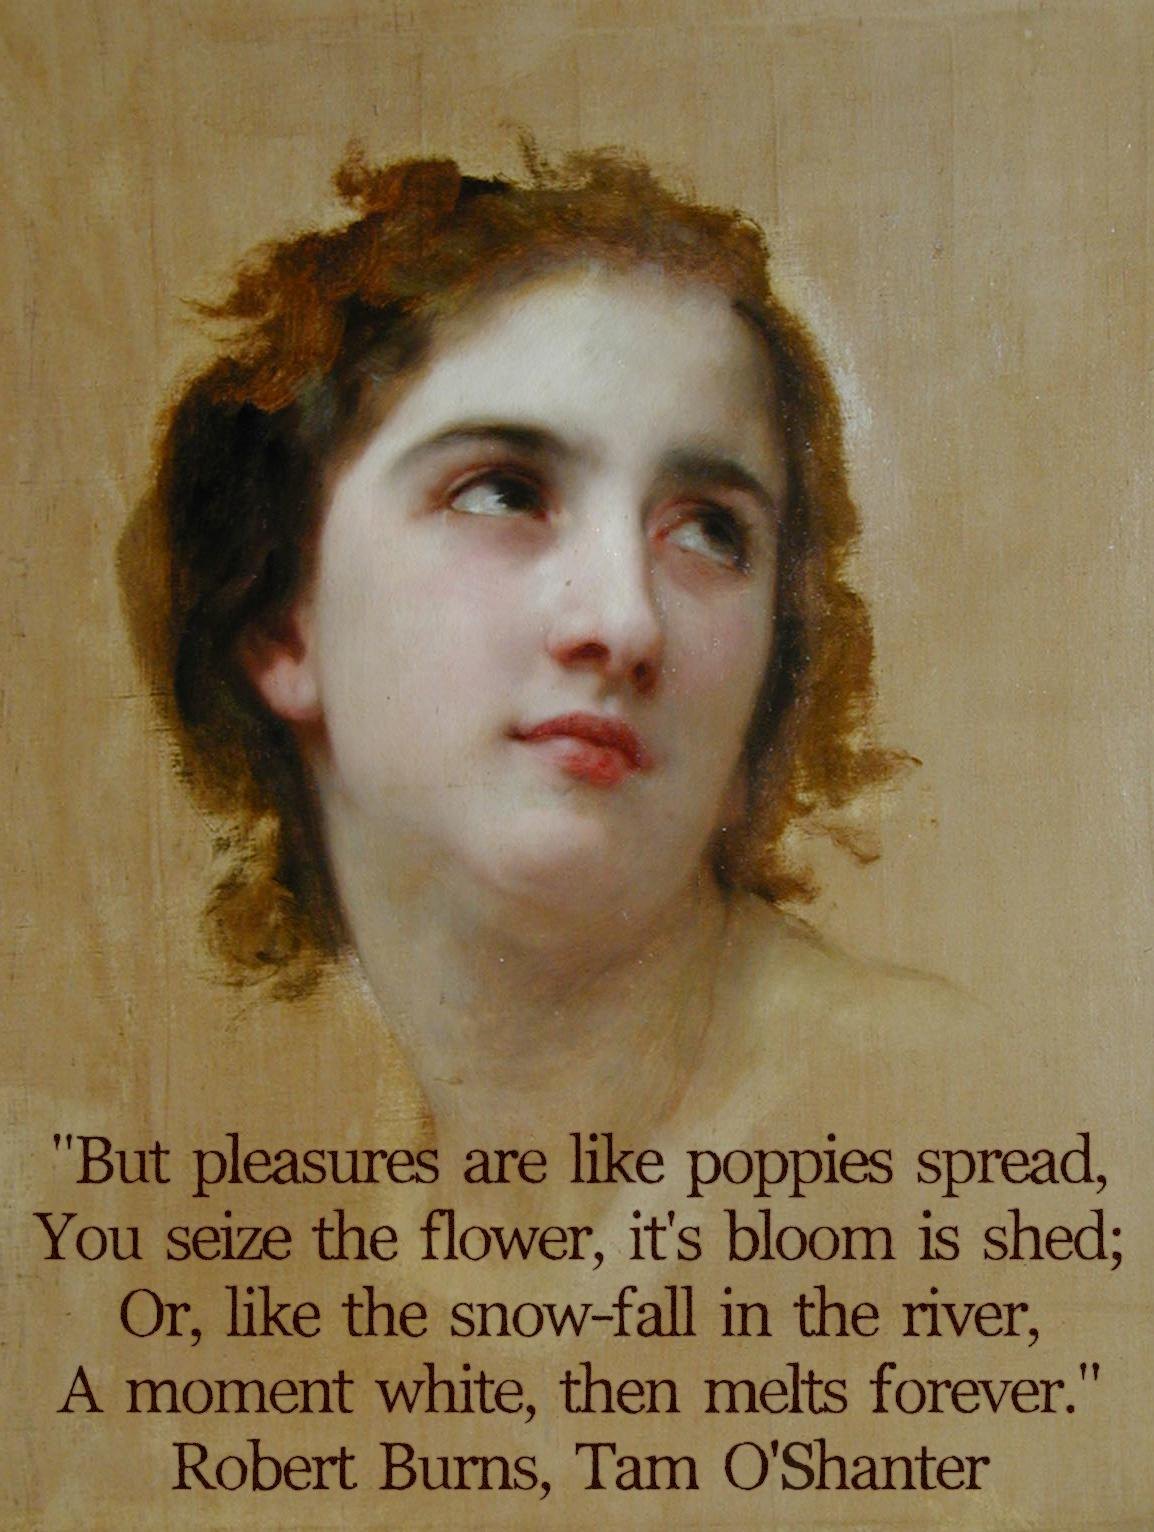 """But pleasures are like poppies spread, You seize the flower, it's bloom is shed; Or, like the snow-fall in the river, A moment white, then melts forever."" Robert Burns, Tam O'Shanter [1154×1532]"